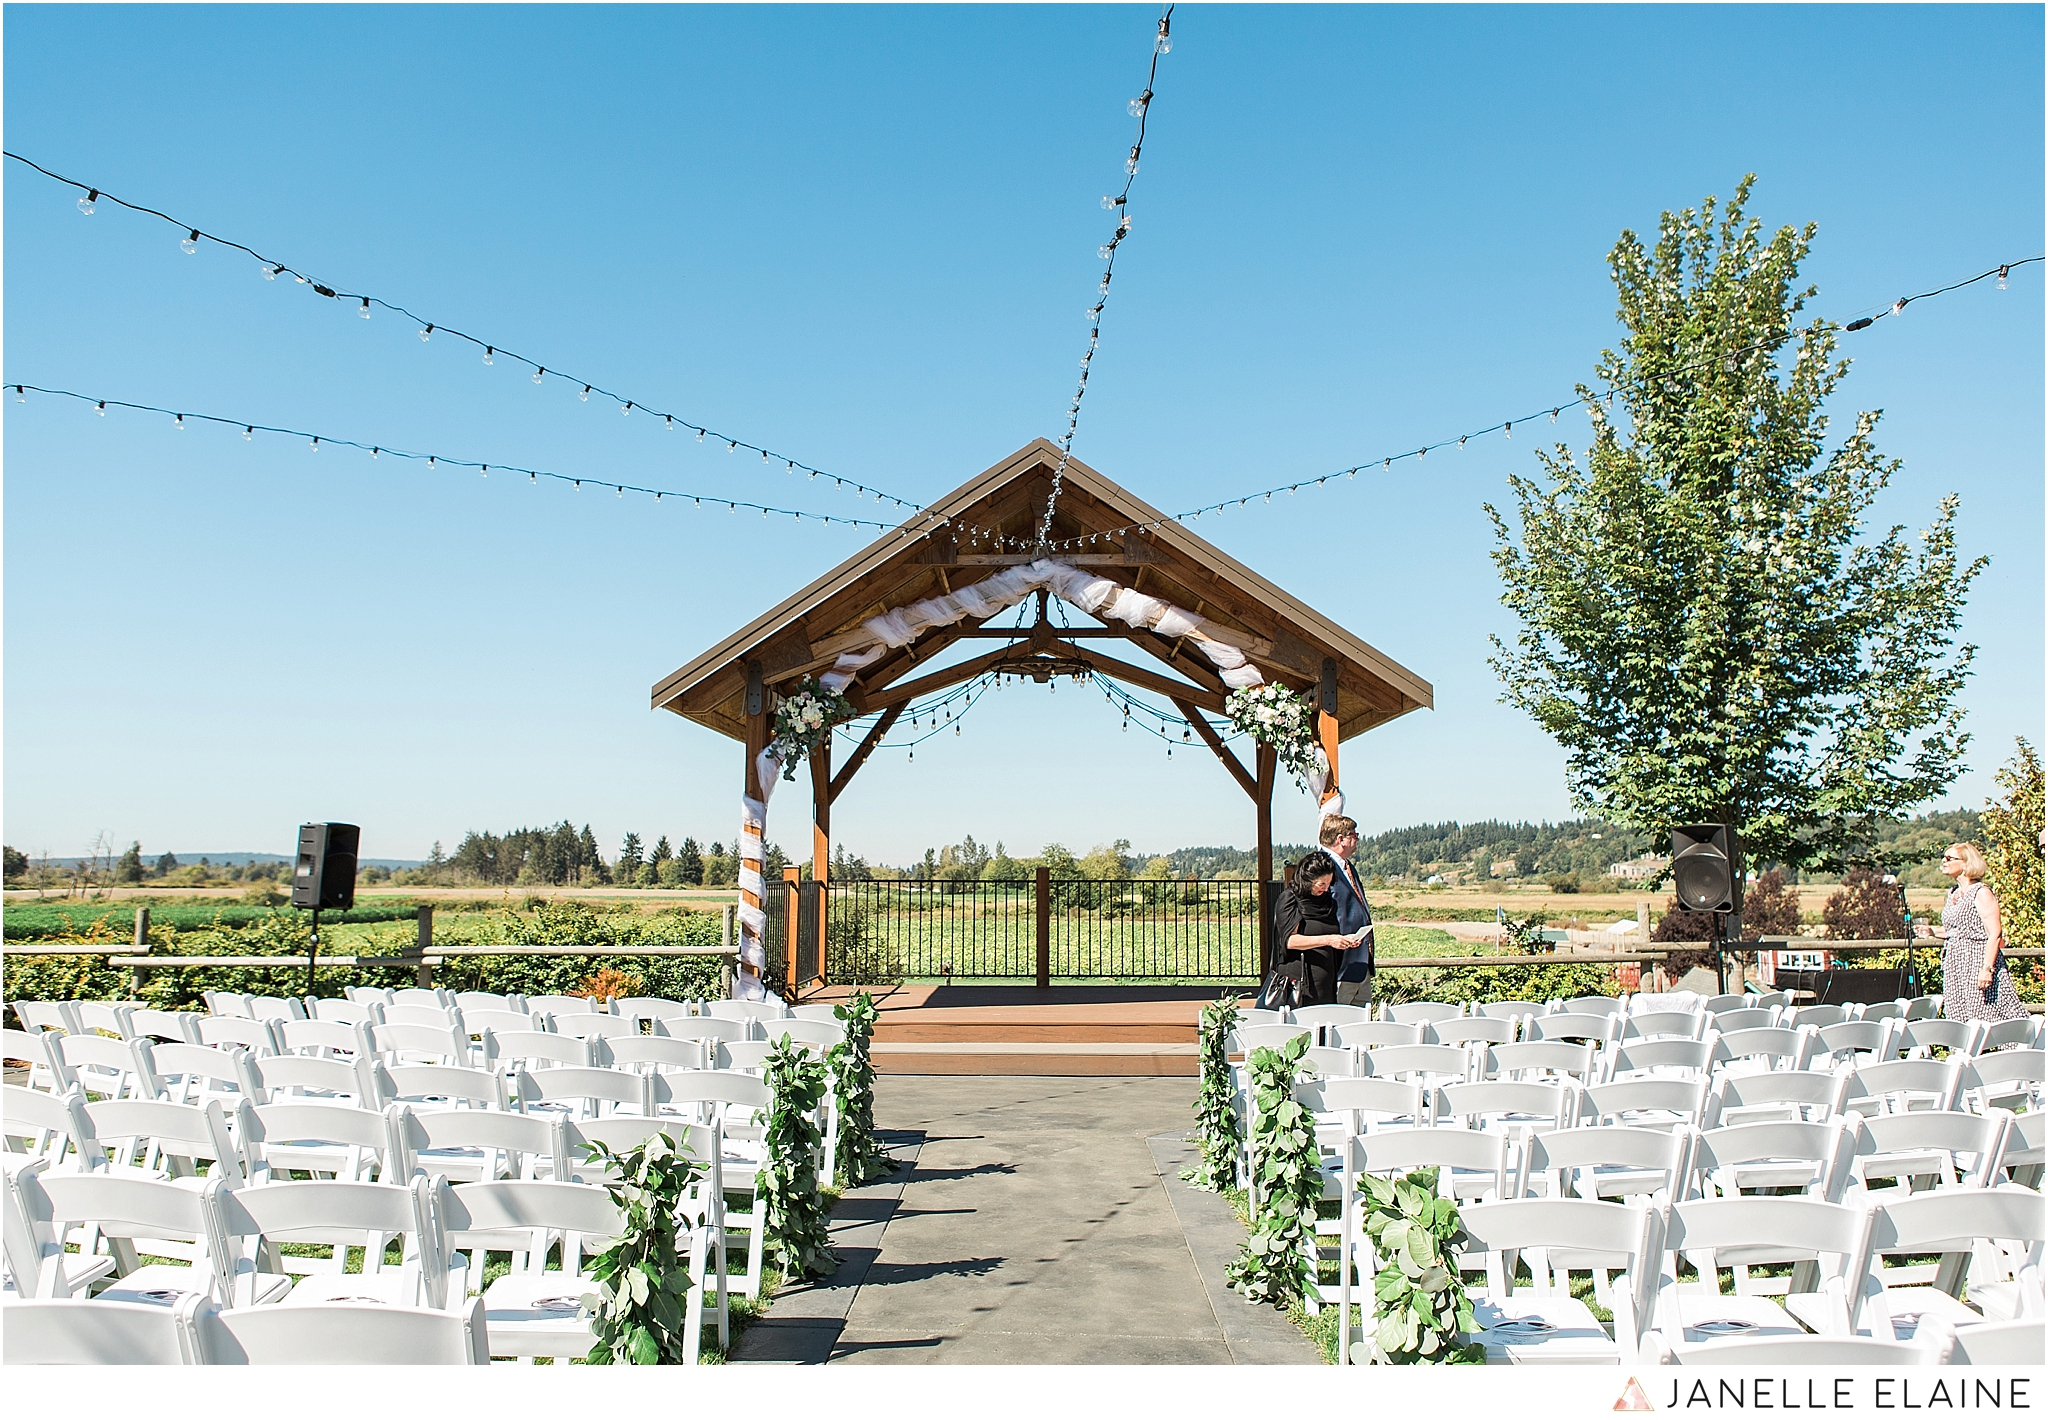 janelle elaine photography-carleton farms-washington-wedding-lake stevens-176.jpg